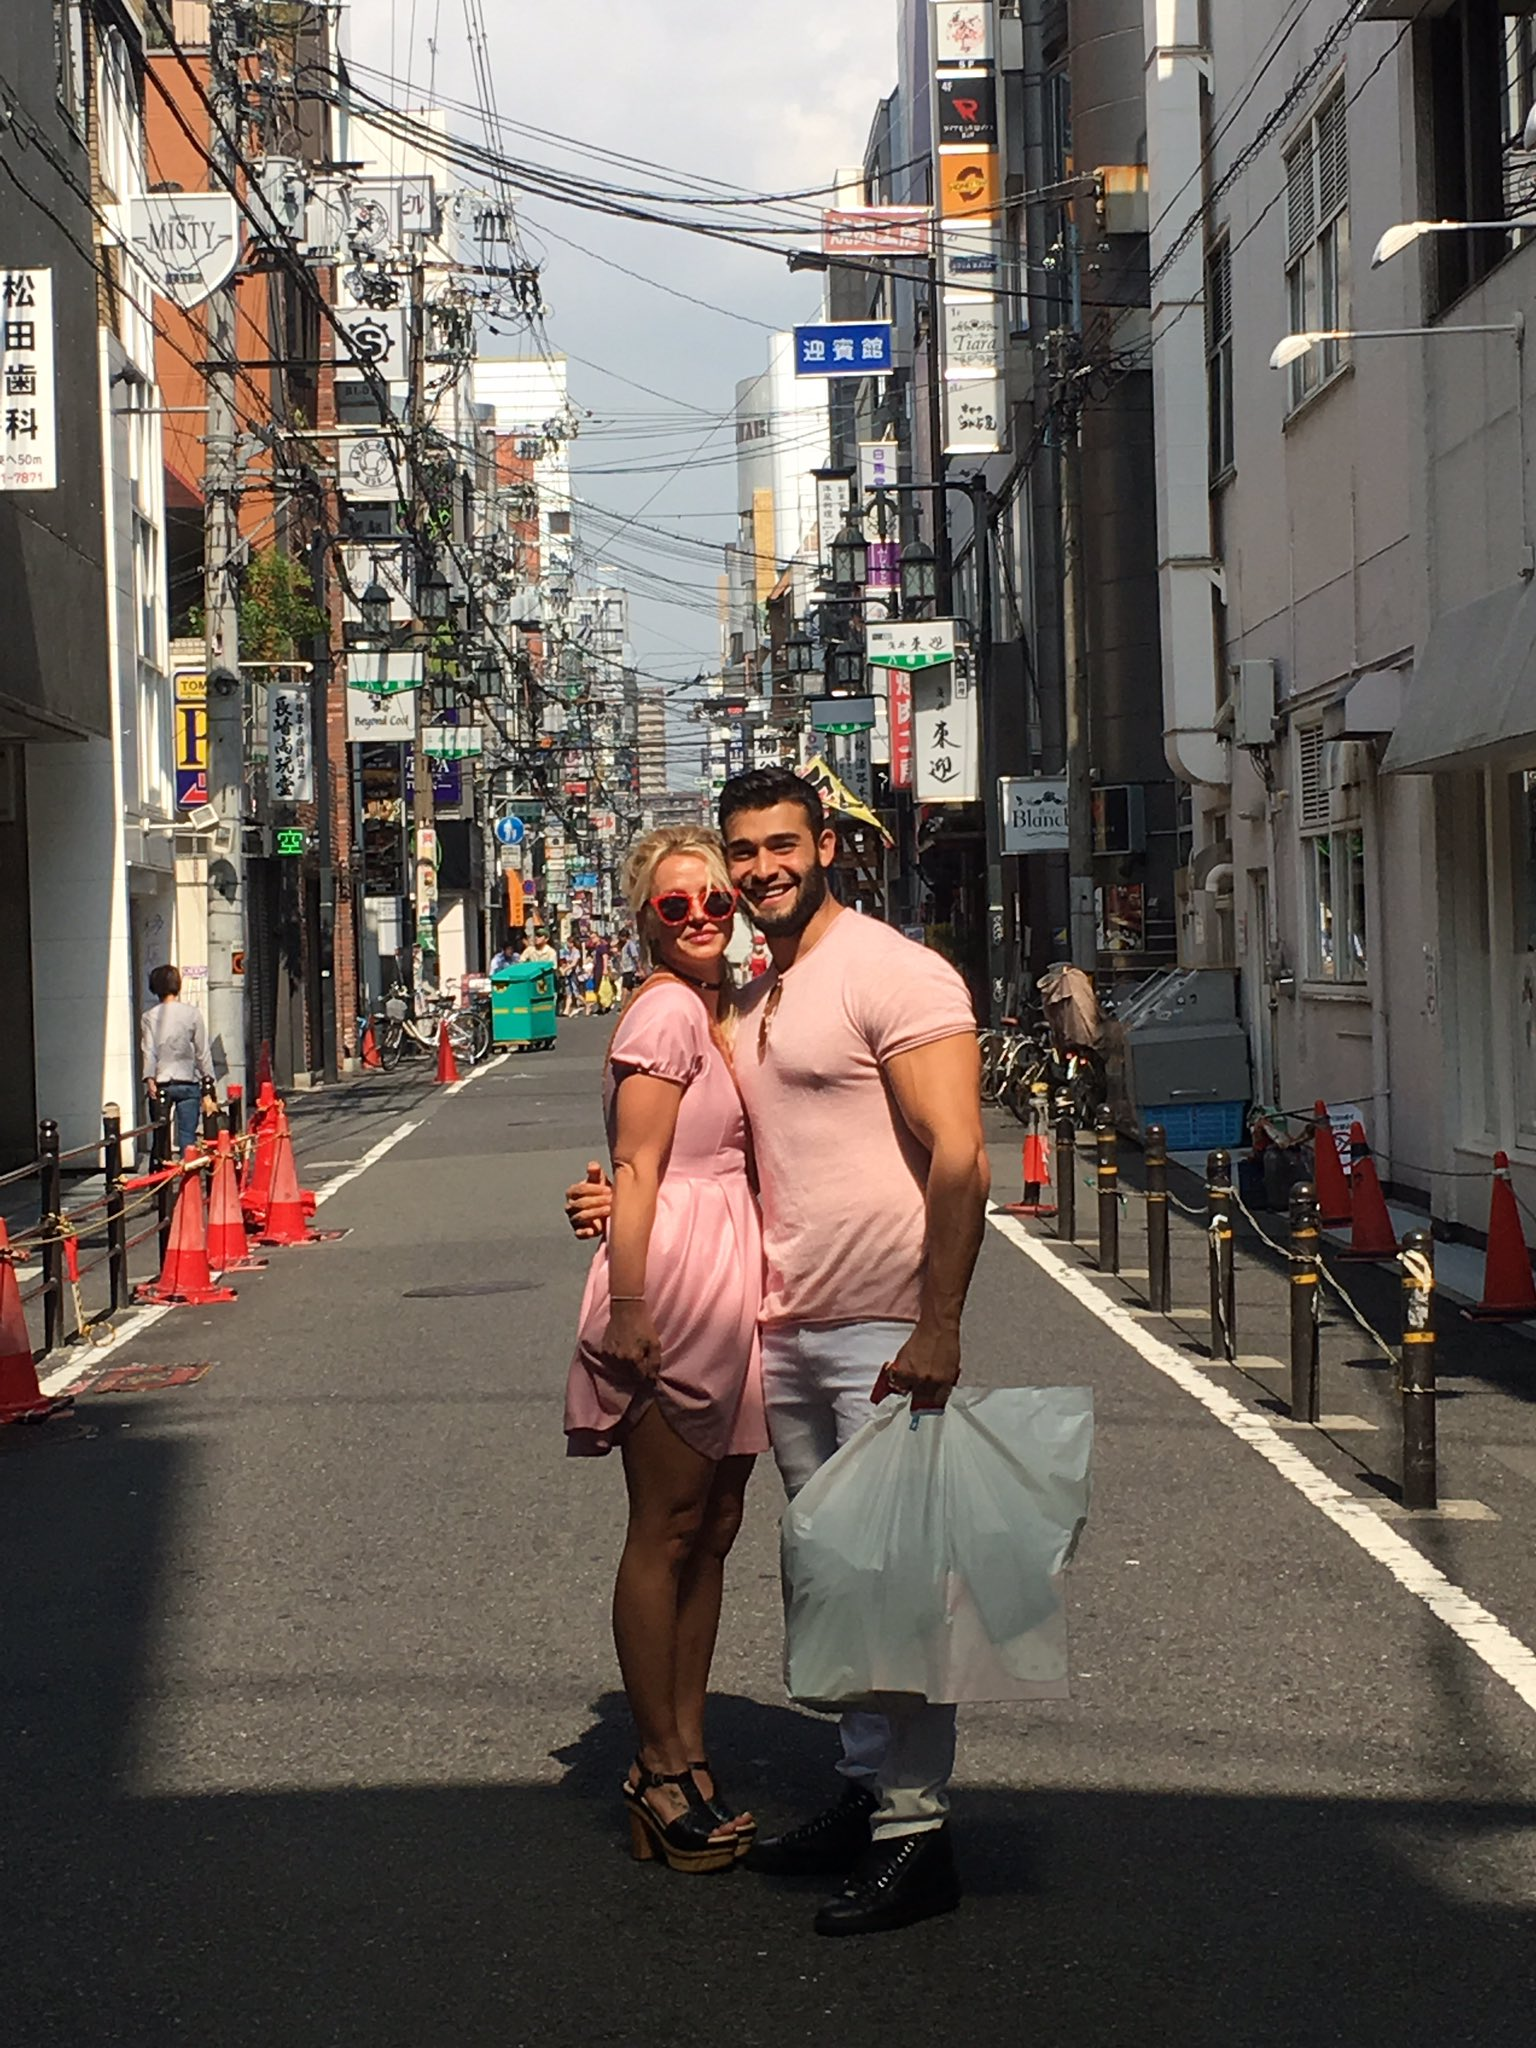 Look who came to see me in Japan ���� @SamAsghari0 �� great matching duo !!!!!!! ������ https://t.co/oUxwTsGdJf